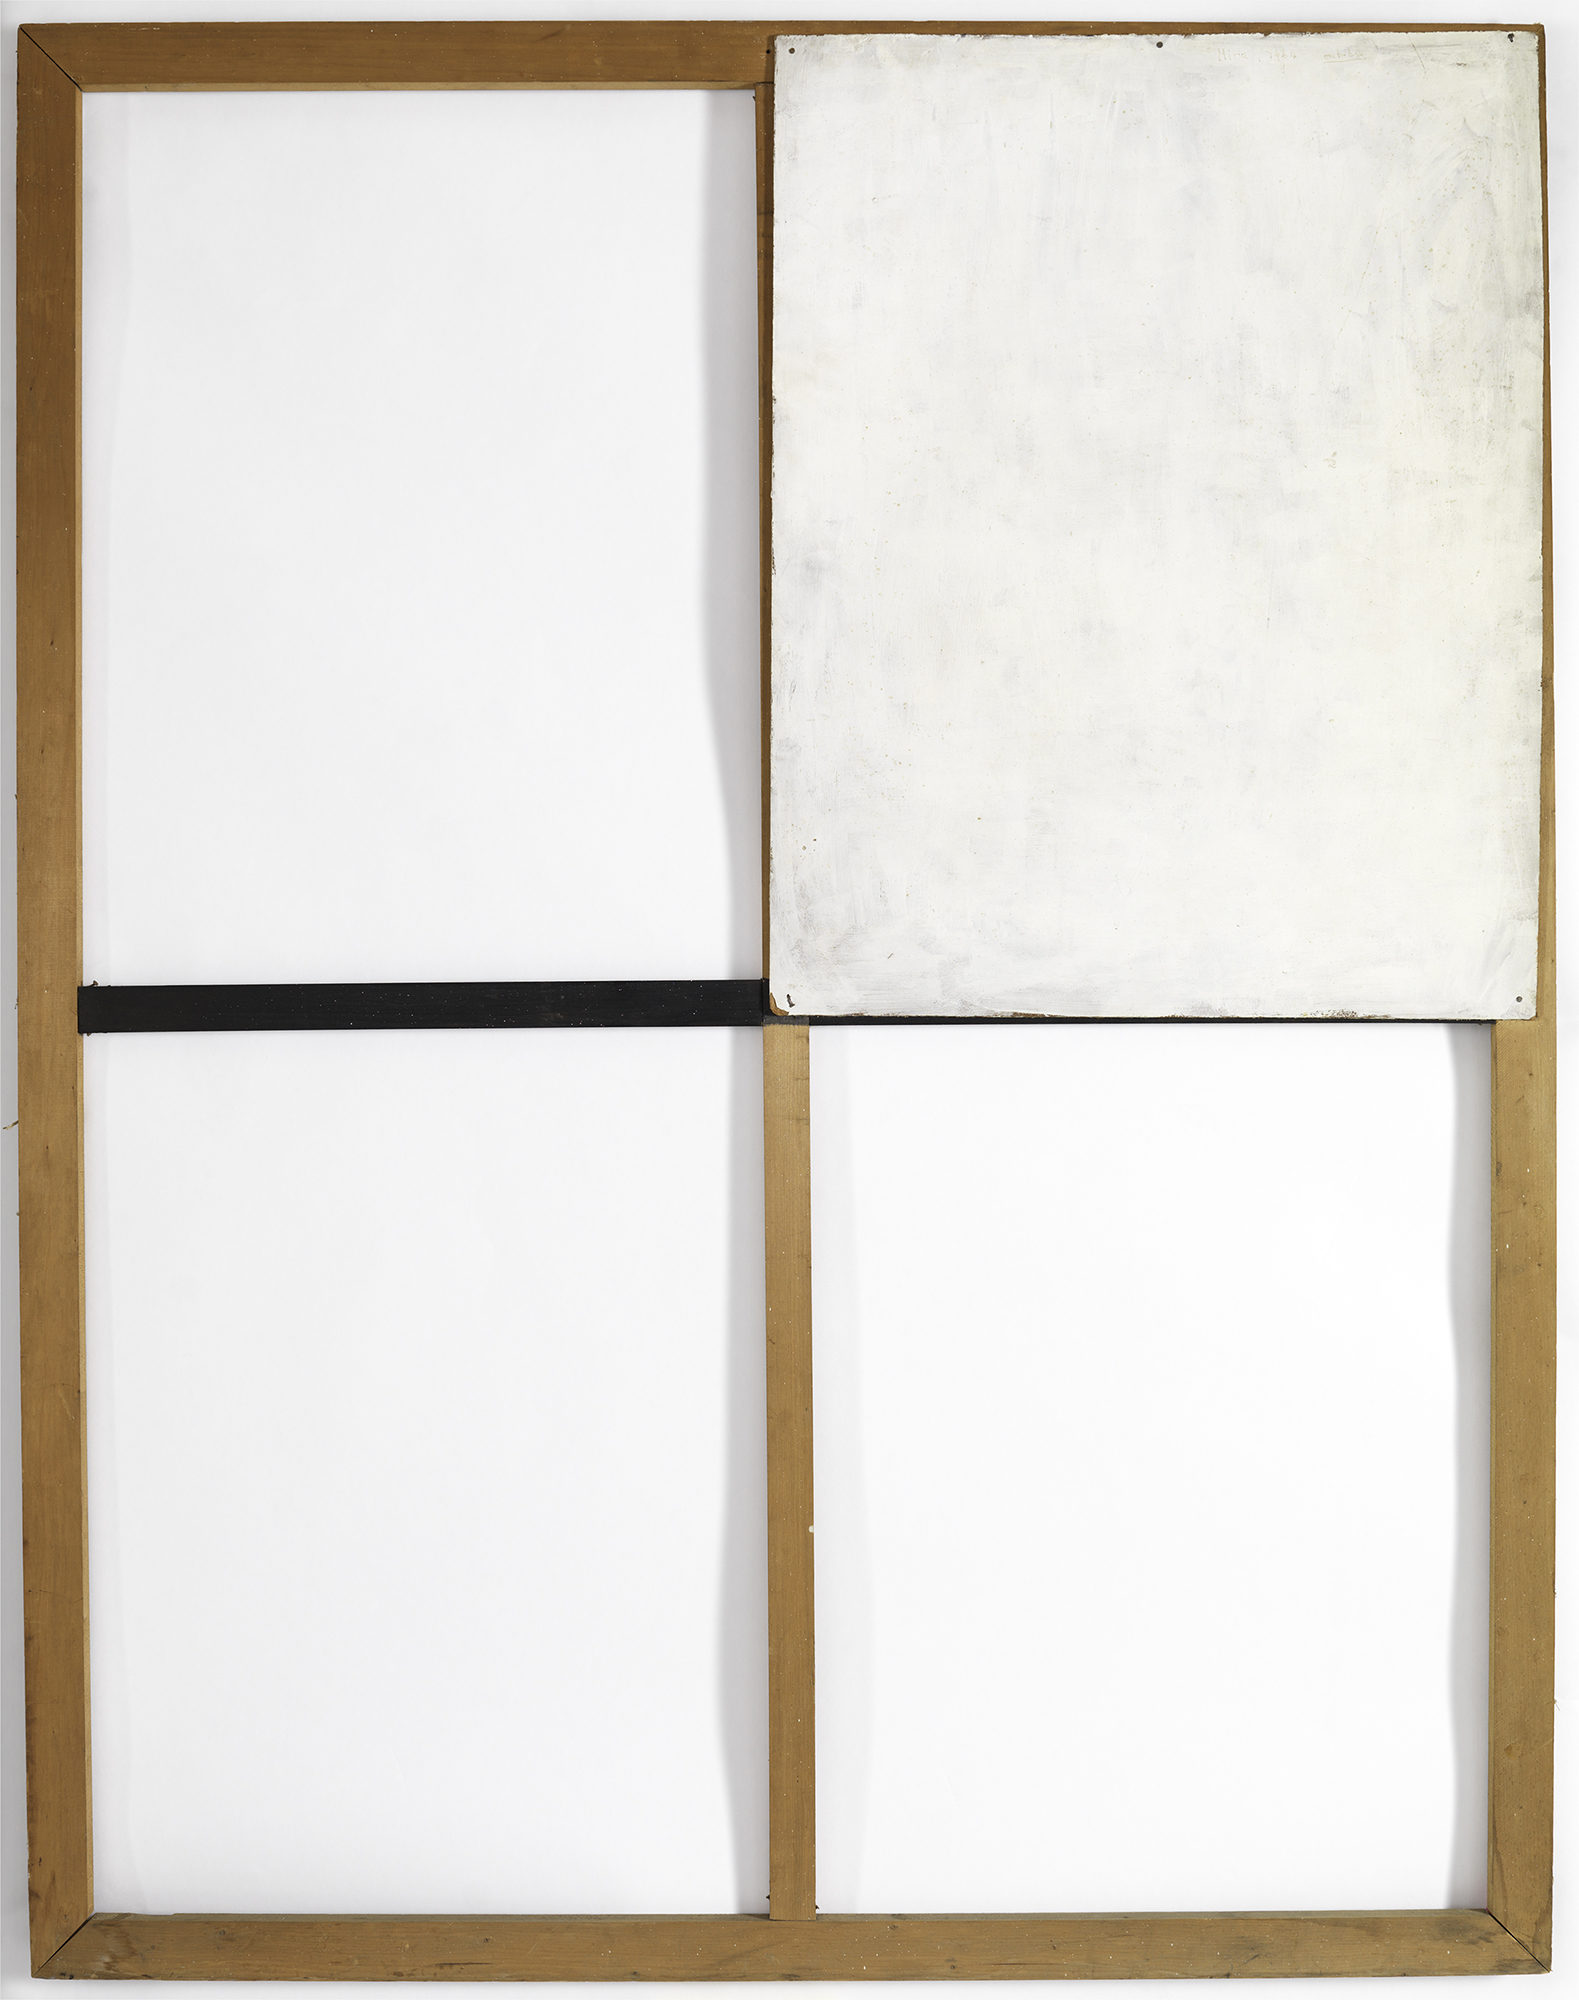 Mira Schendel (Brazilian, born Switzerland. 1919–1988) Untitled. 1964. Oil and tempera on composition board and wood, 57 7/8 × 44 7/8 × 13/16″ (147 × 114 × 2 cm). The Museum of Modern Art, New York.